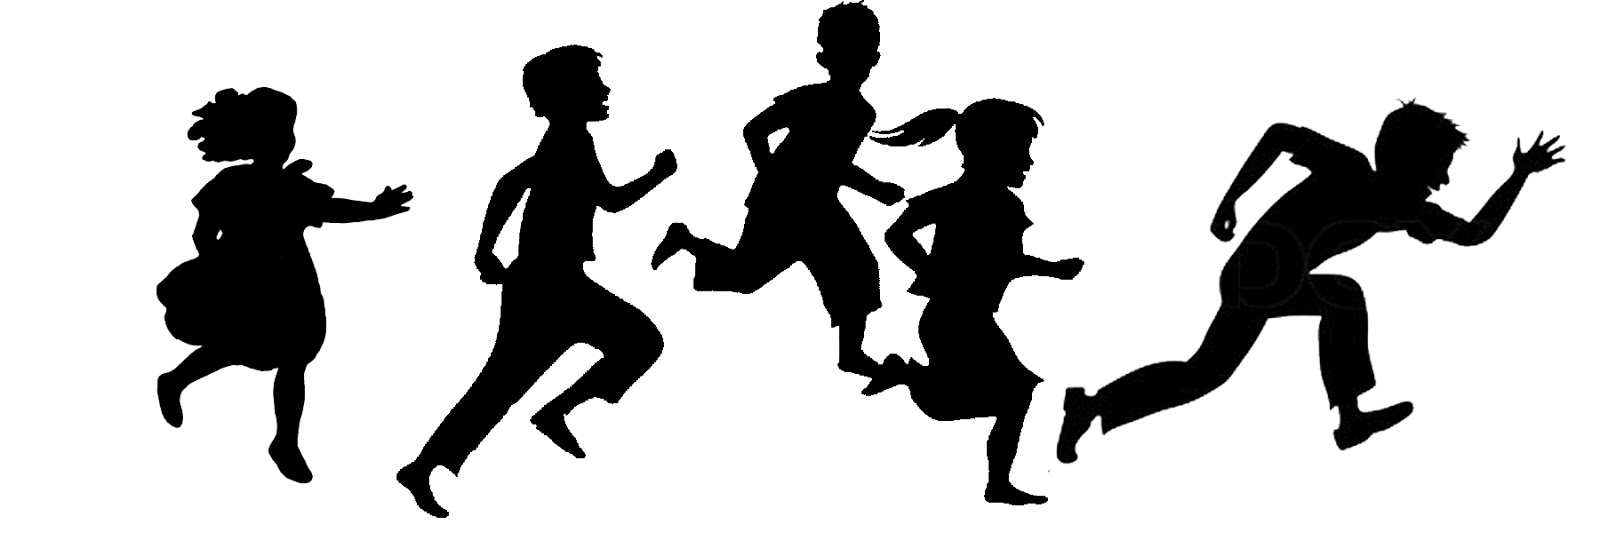 Kids walking home black and white clipart picture royalty free library Montebello Police Athletic & Activities League (PAAL ... picture royalty free library